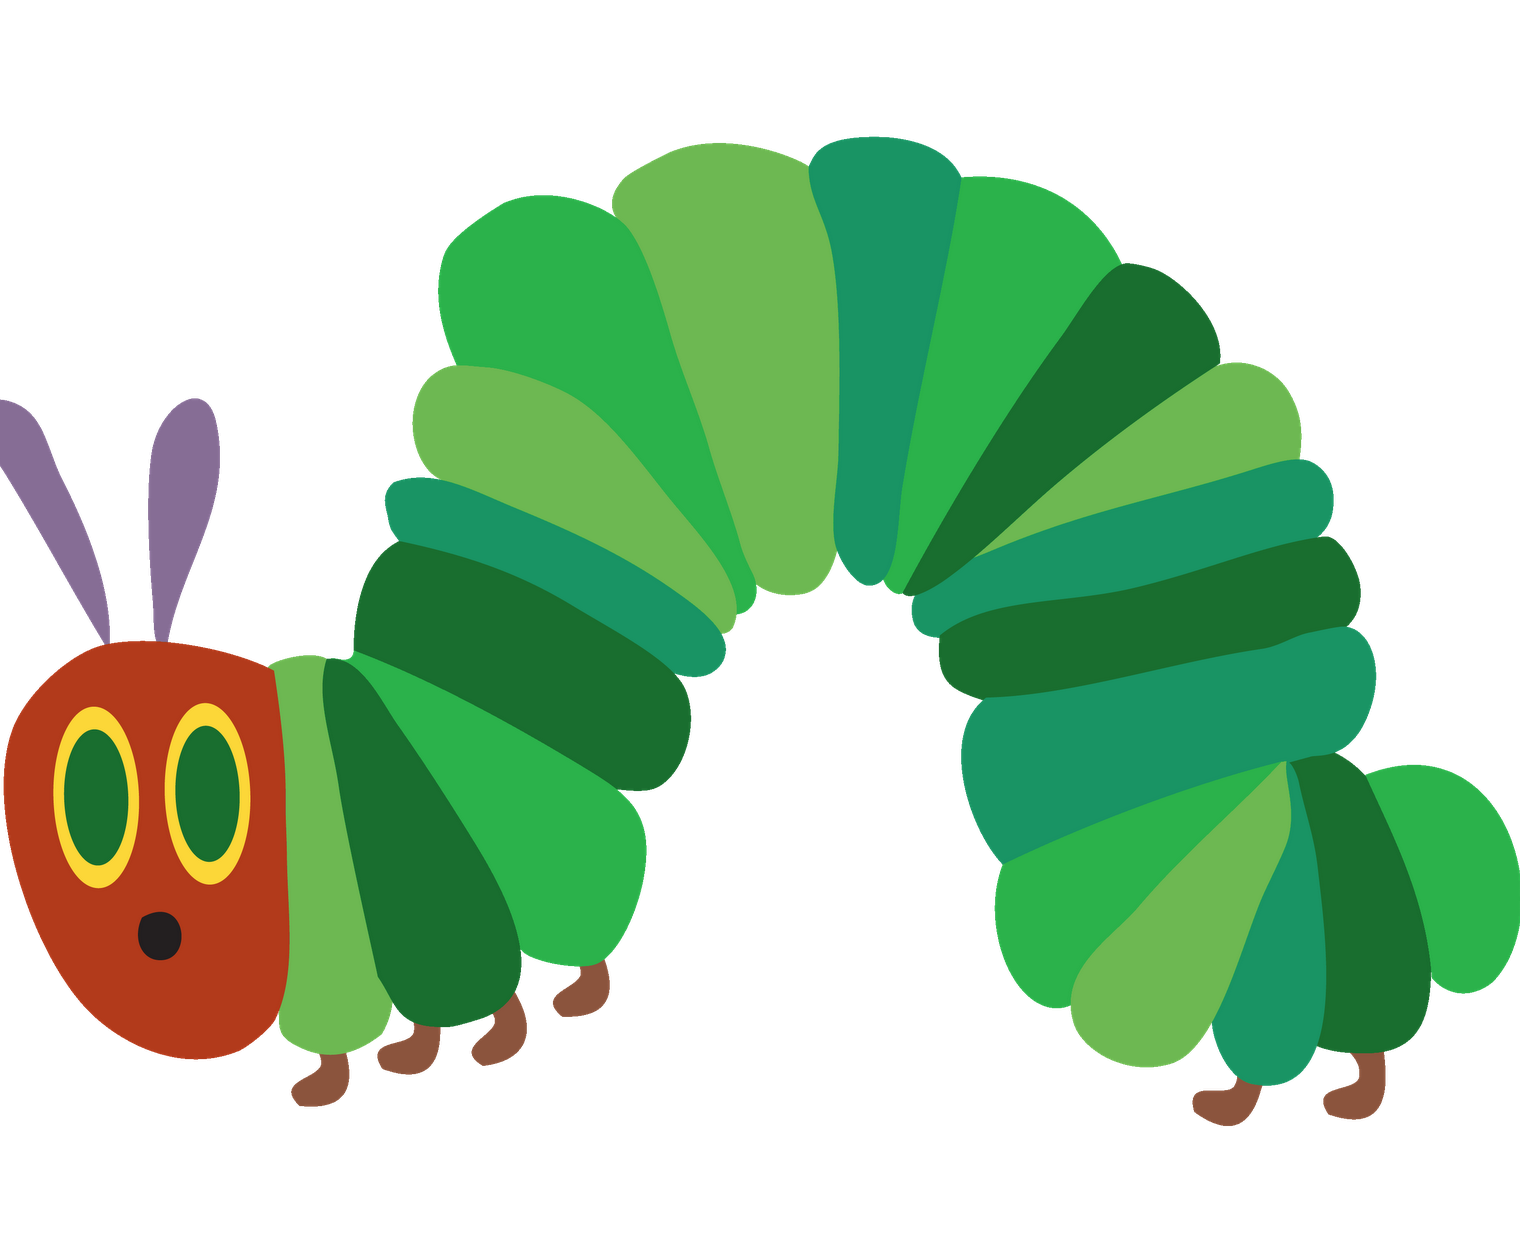 1520x1236 The Very Hungry Caterpillar Text, Images, Music, Video Glogster